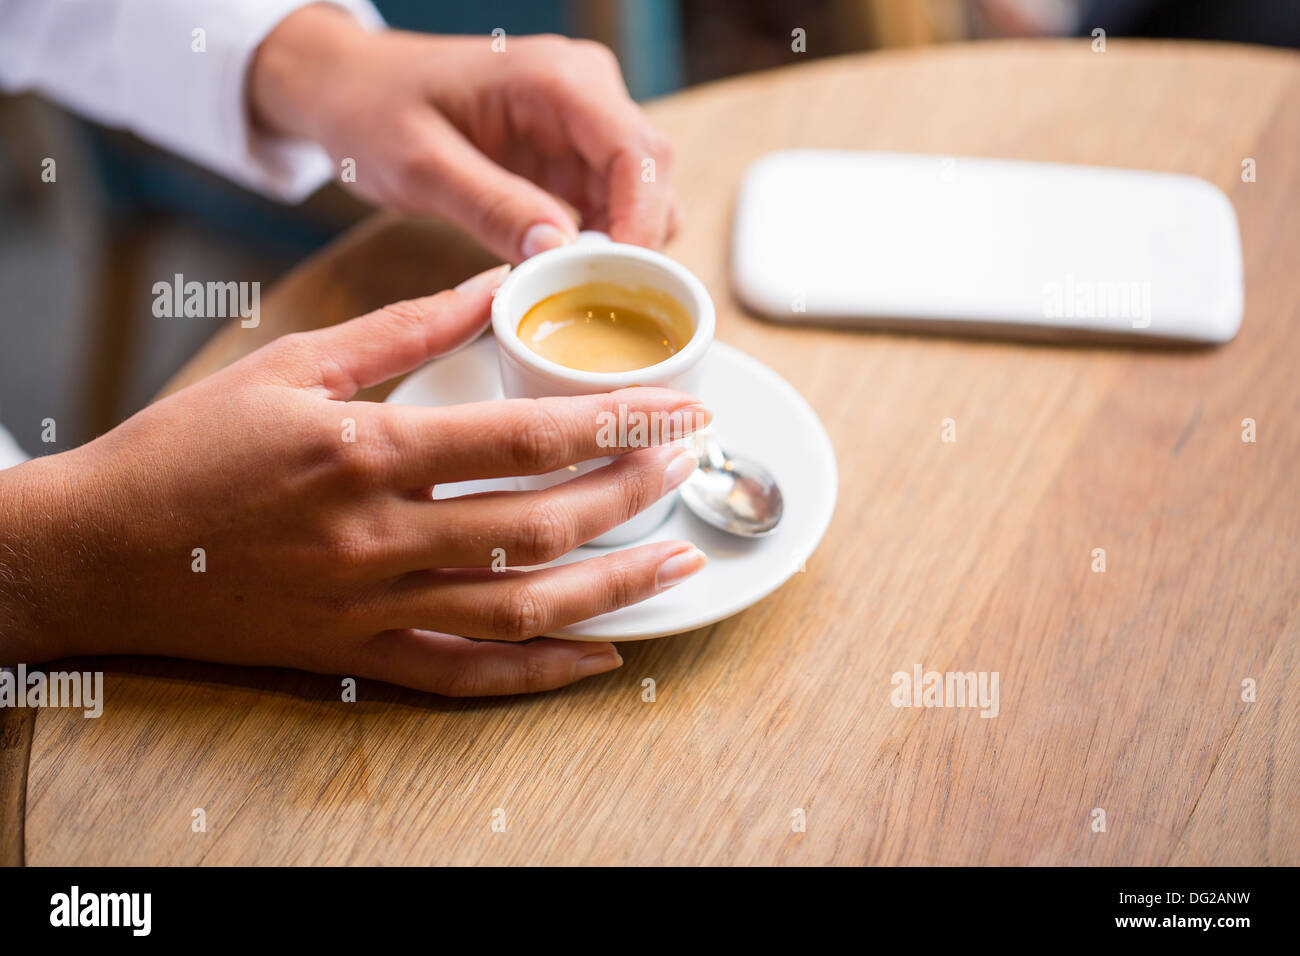 Female restaurant hand coffee table mobile phone - Stock Image